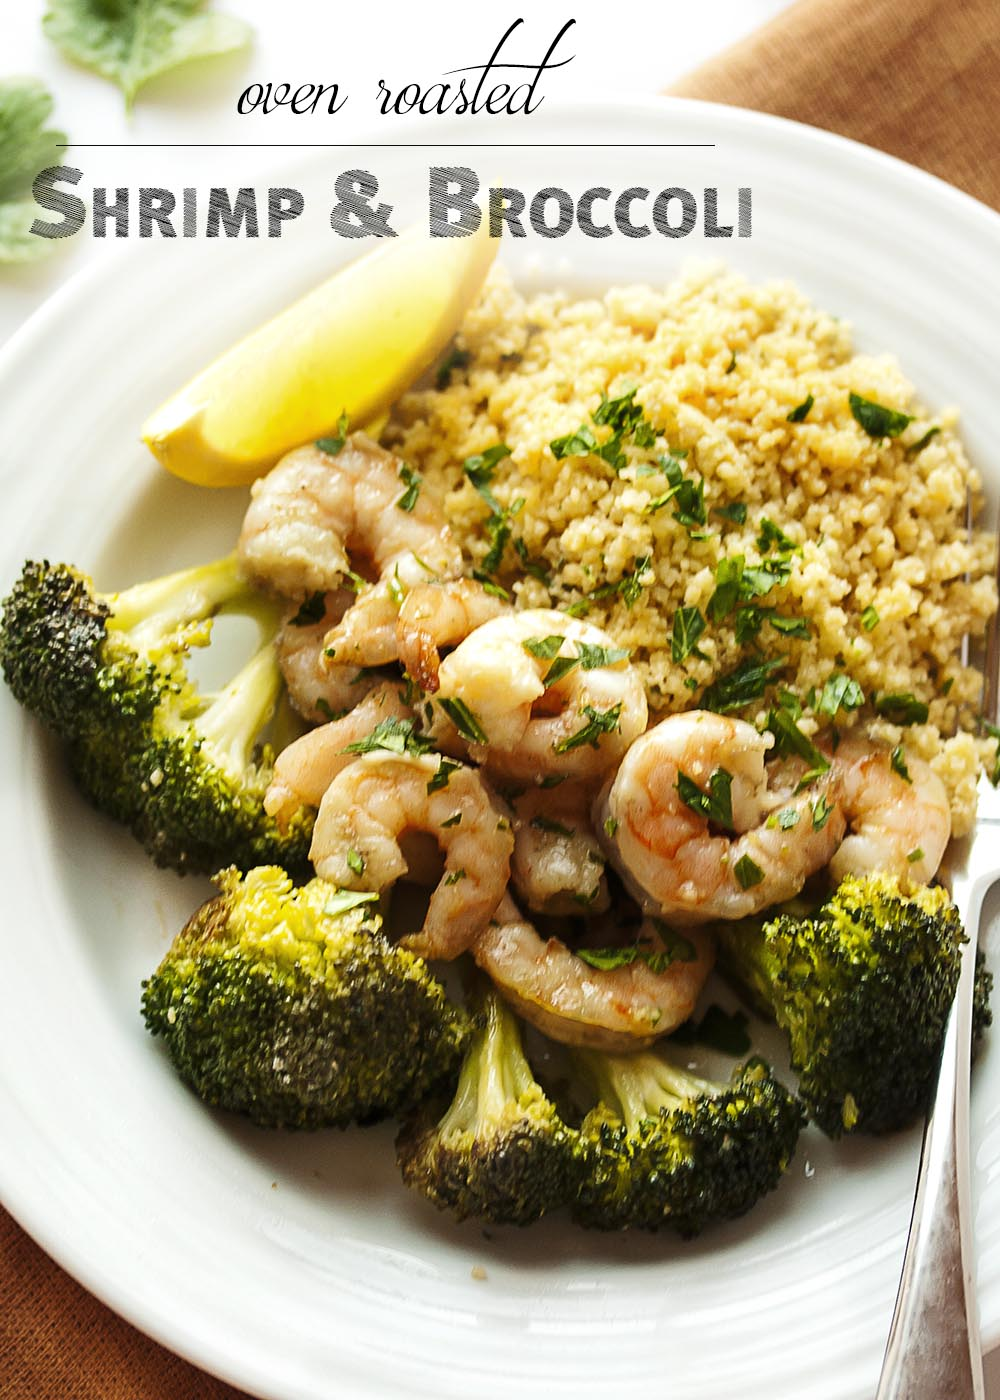 Oven Roasted Shrimp and Broccoli - This simple and satisfying dinner of shrimp, broccoli, and couscous goes from oven to table in only 20 minutes and two pans. | justalittlebitofbacon.com